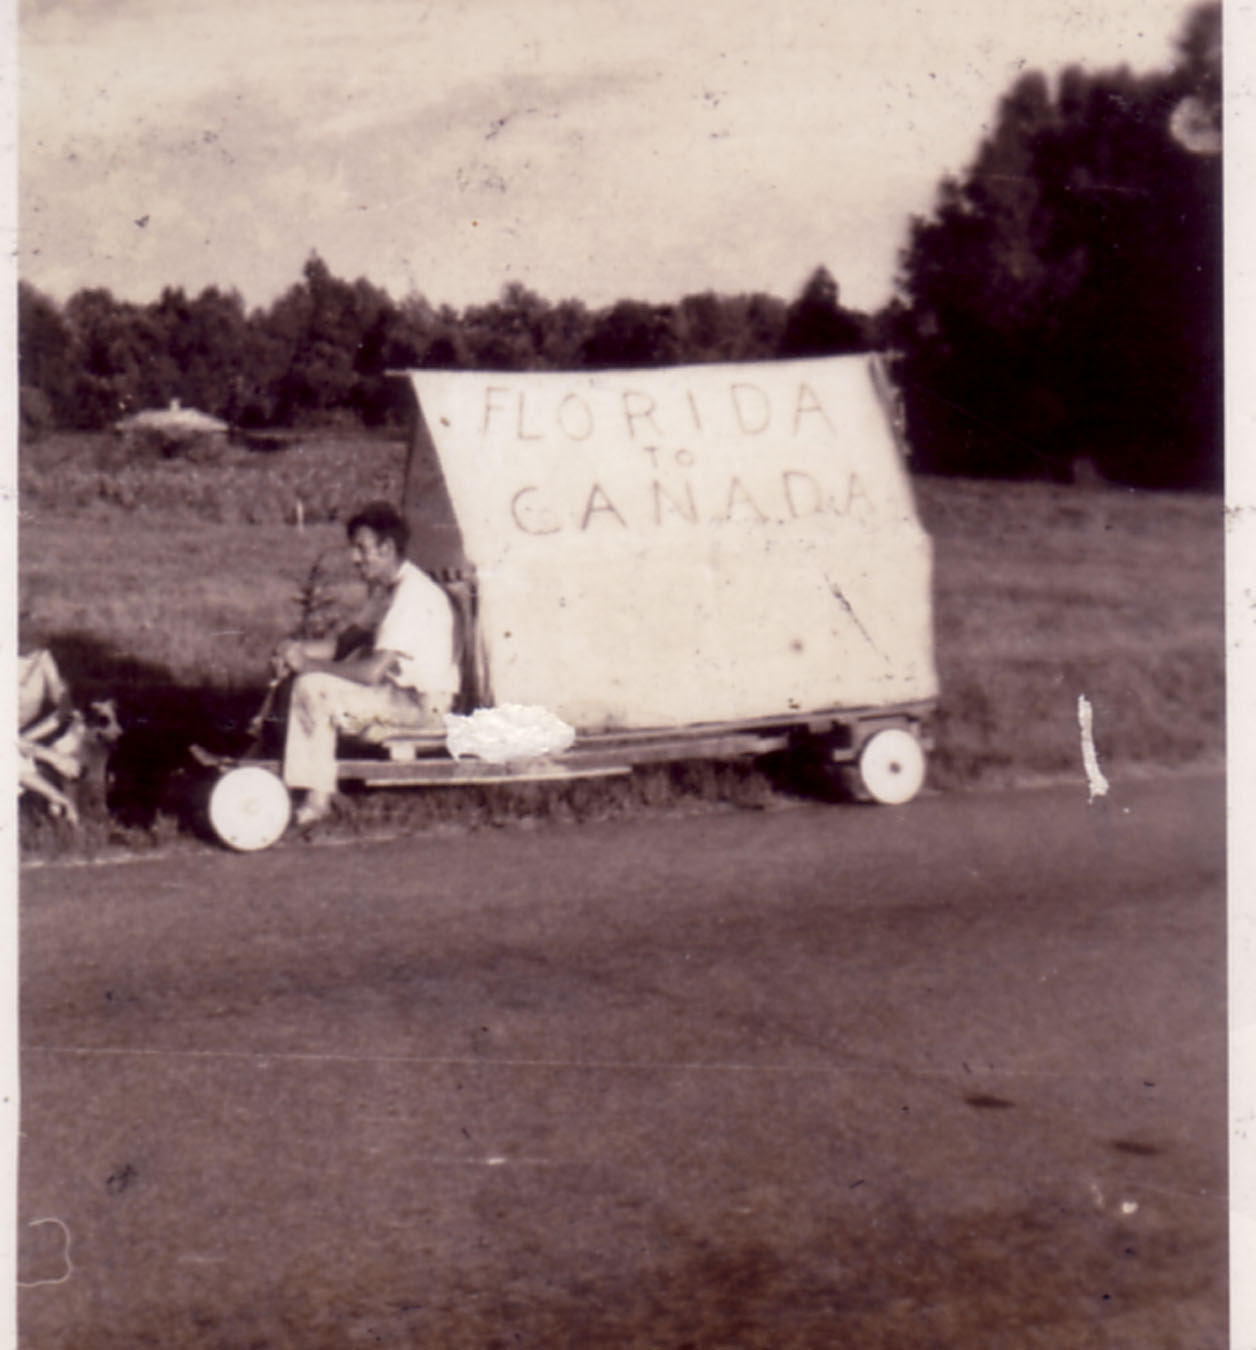 Goat man on trip from Florida to Canada.  Taken by Hudnalle McLean in the late 1940's.